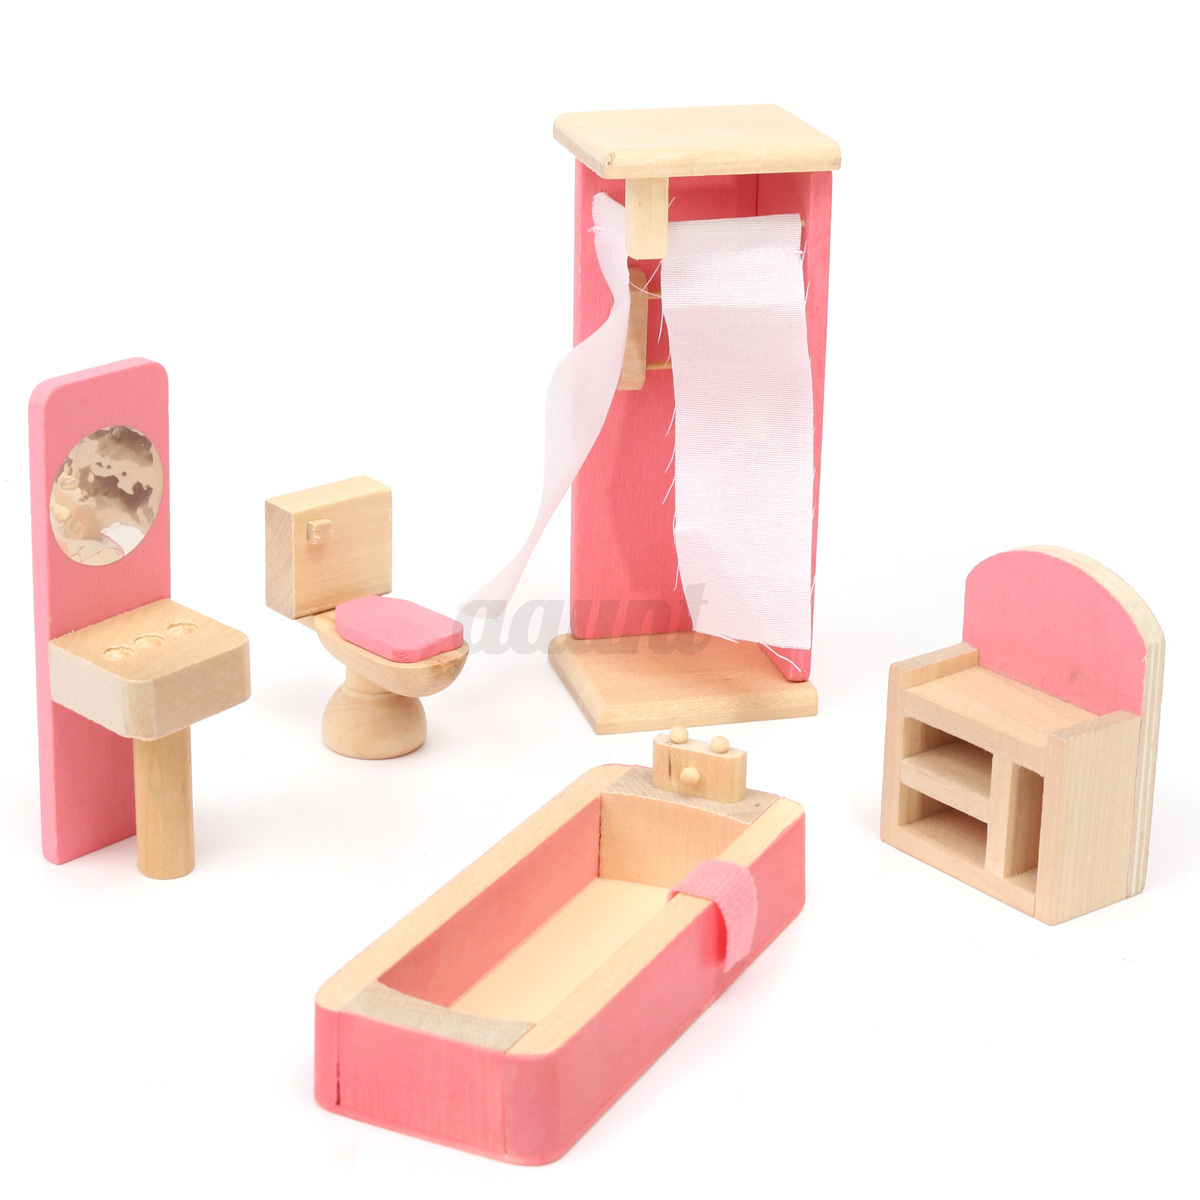 Miniature house family children wooden furniture doll set kit toys accessories ebay Dolls wooden furniture